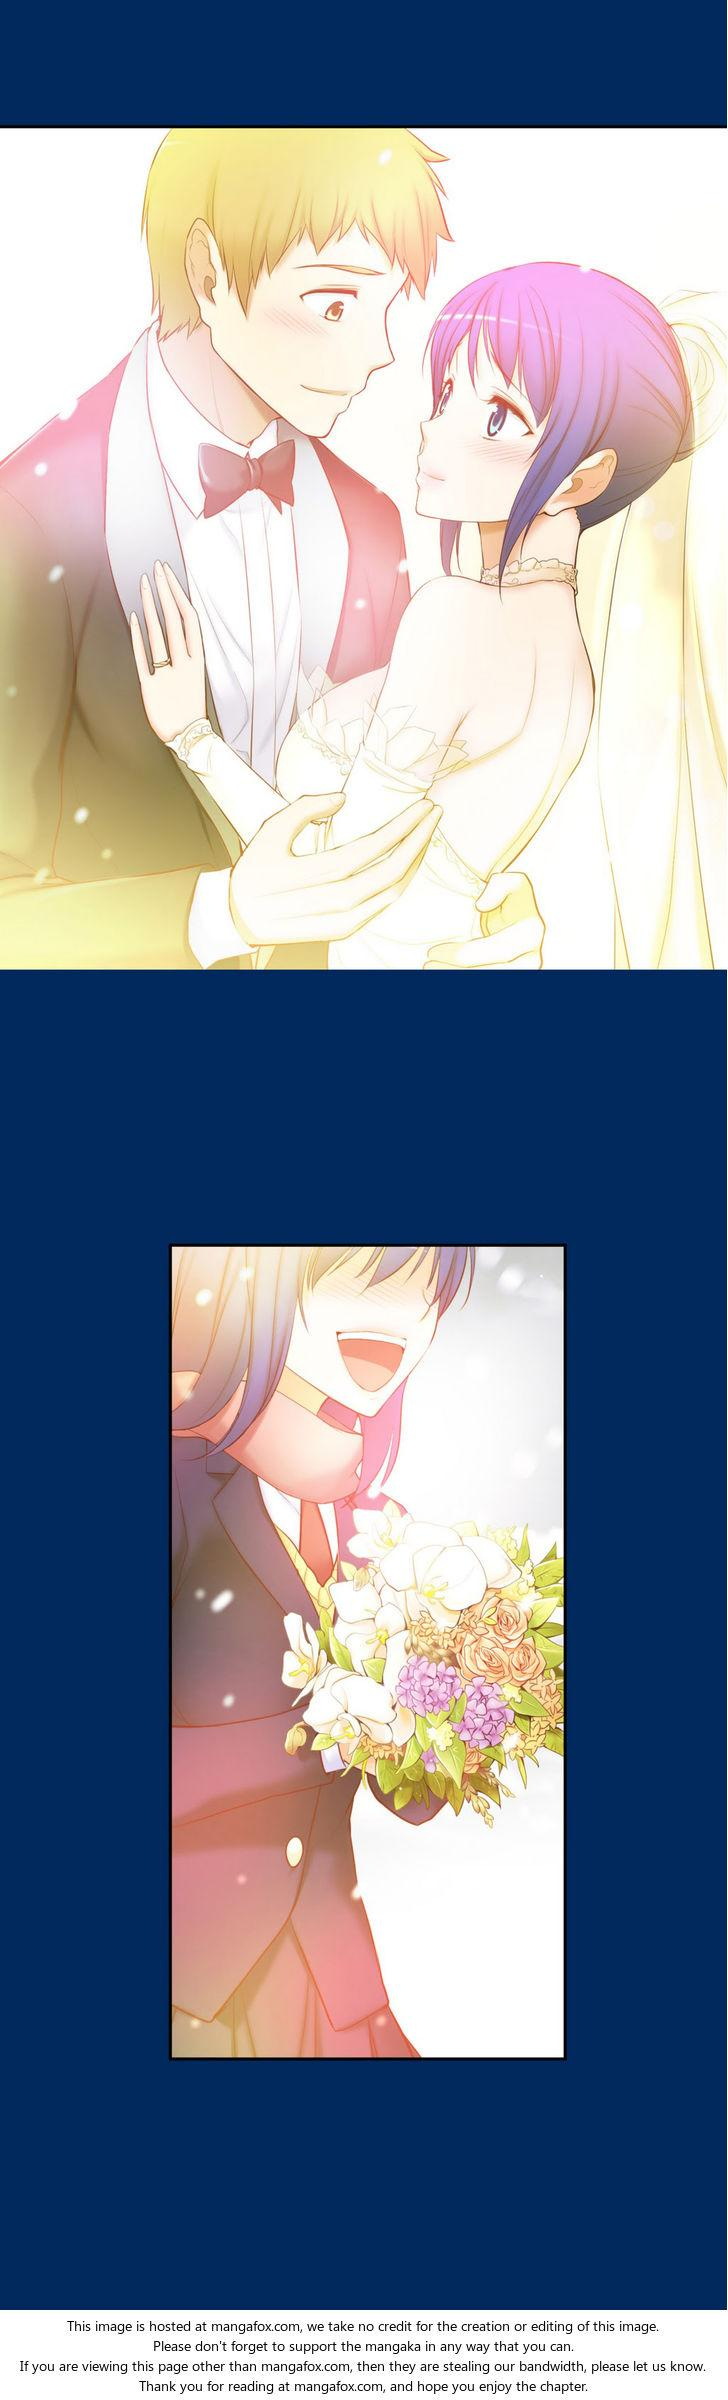 [Donggul Gom] She is Young (English) Part 1/2 1283